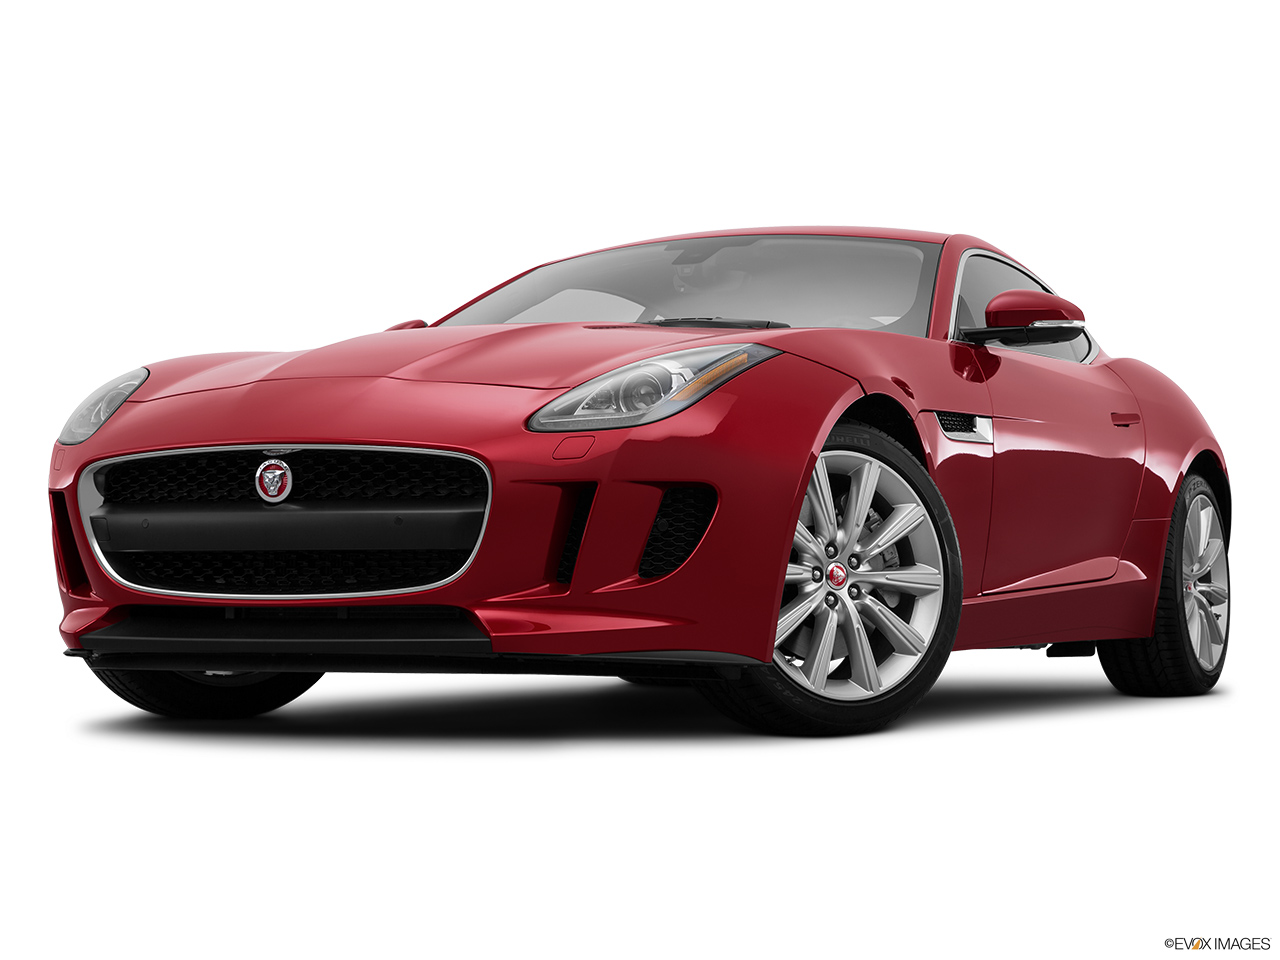 2015 Jaguar F-Type Coupe Base Front angle view, low wide perspective.